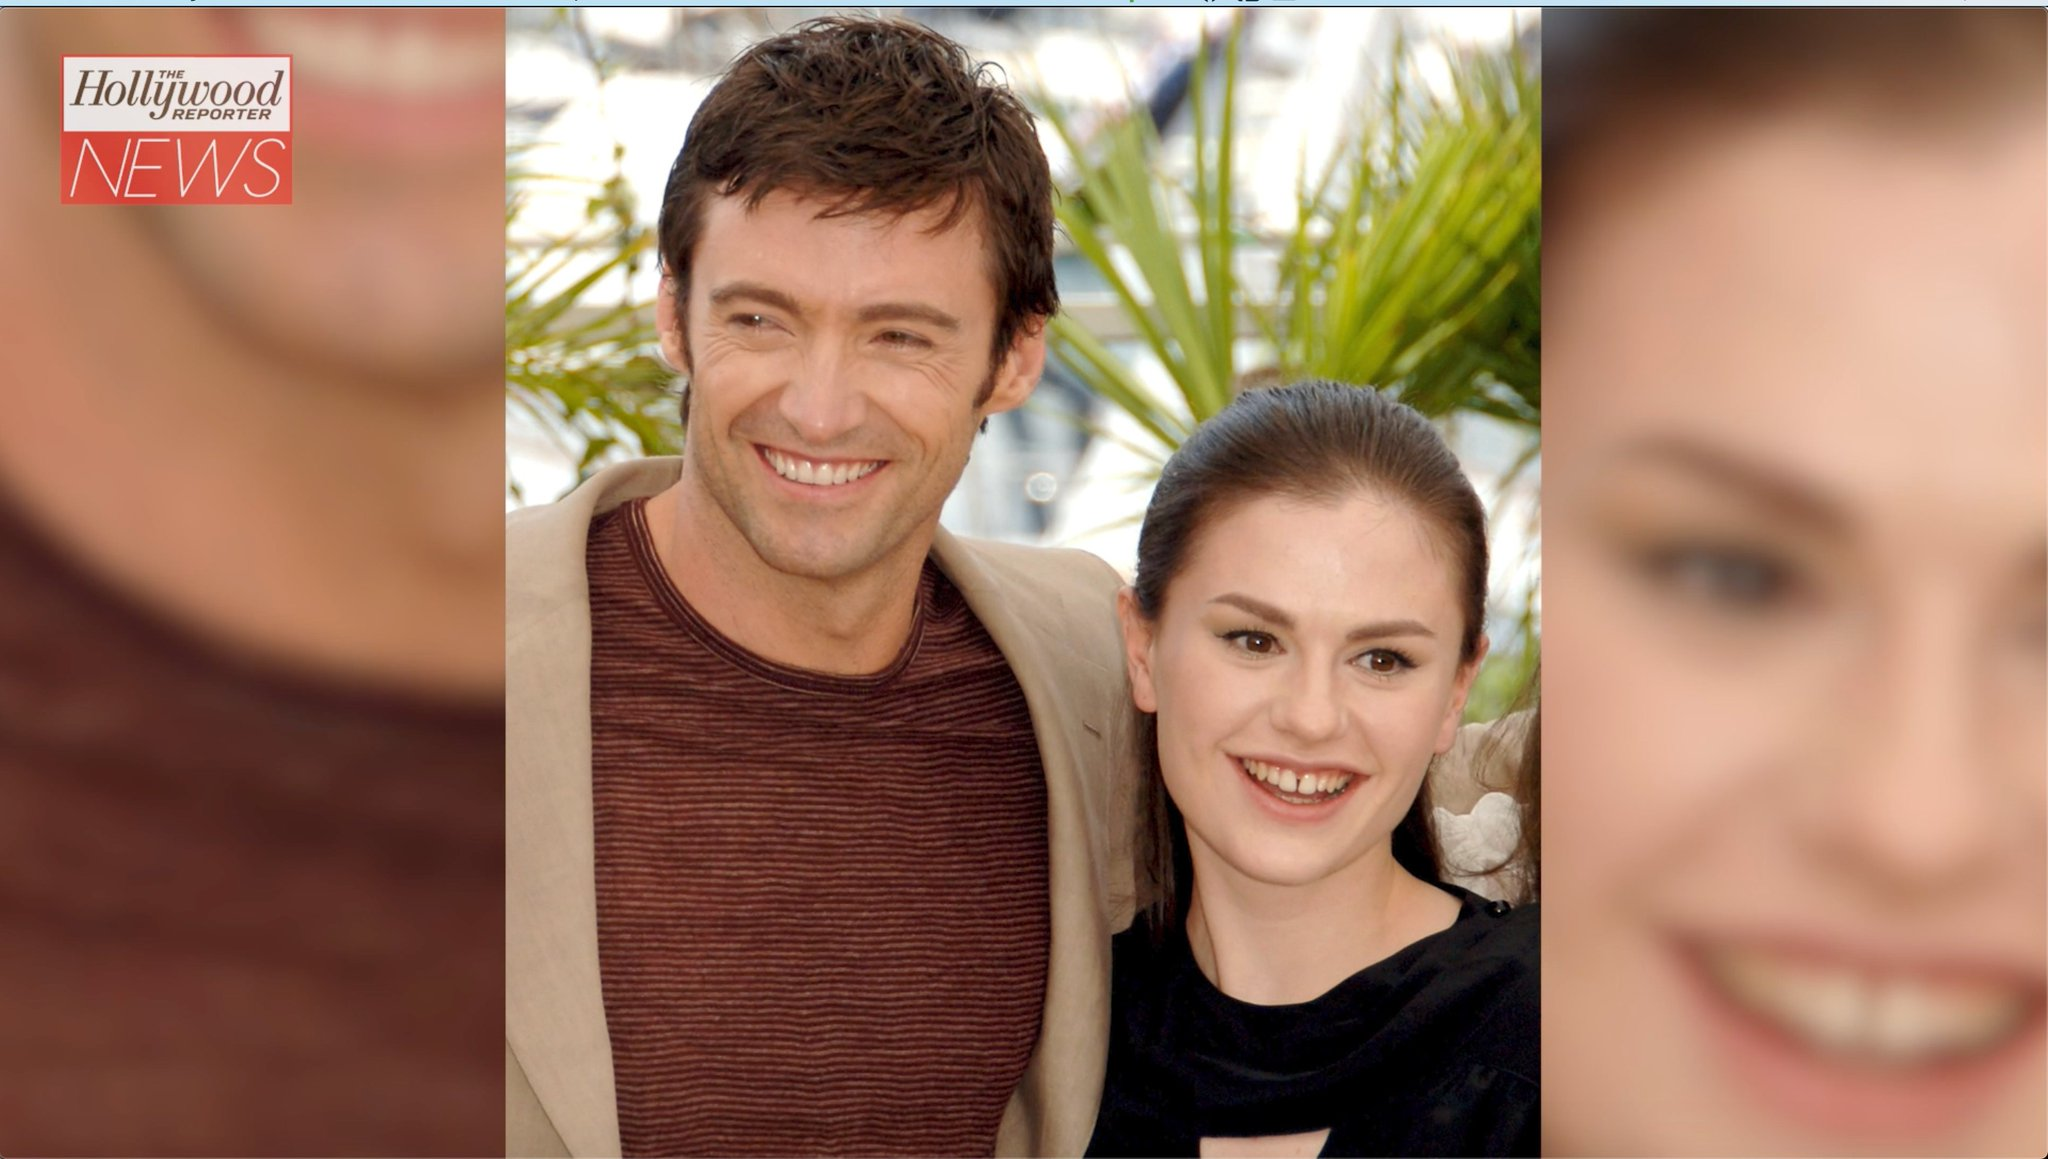 Anna Paquin Says Hugh Jackman Was Brutalized While Making the First X-Men Movie I THR News Photo